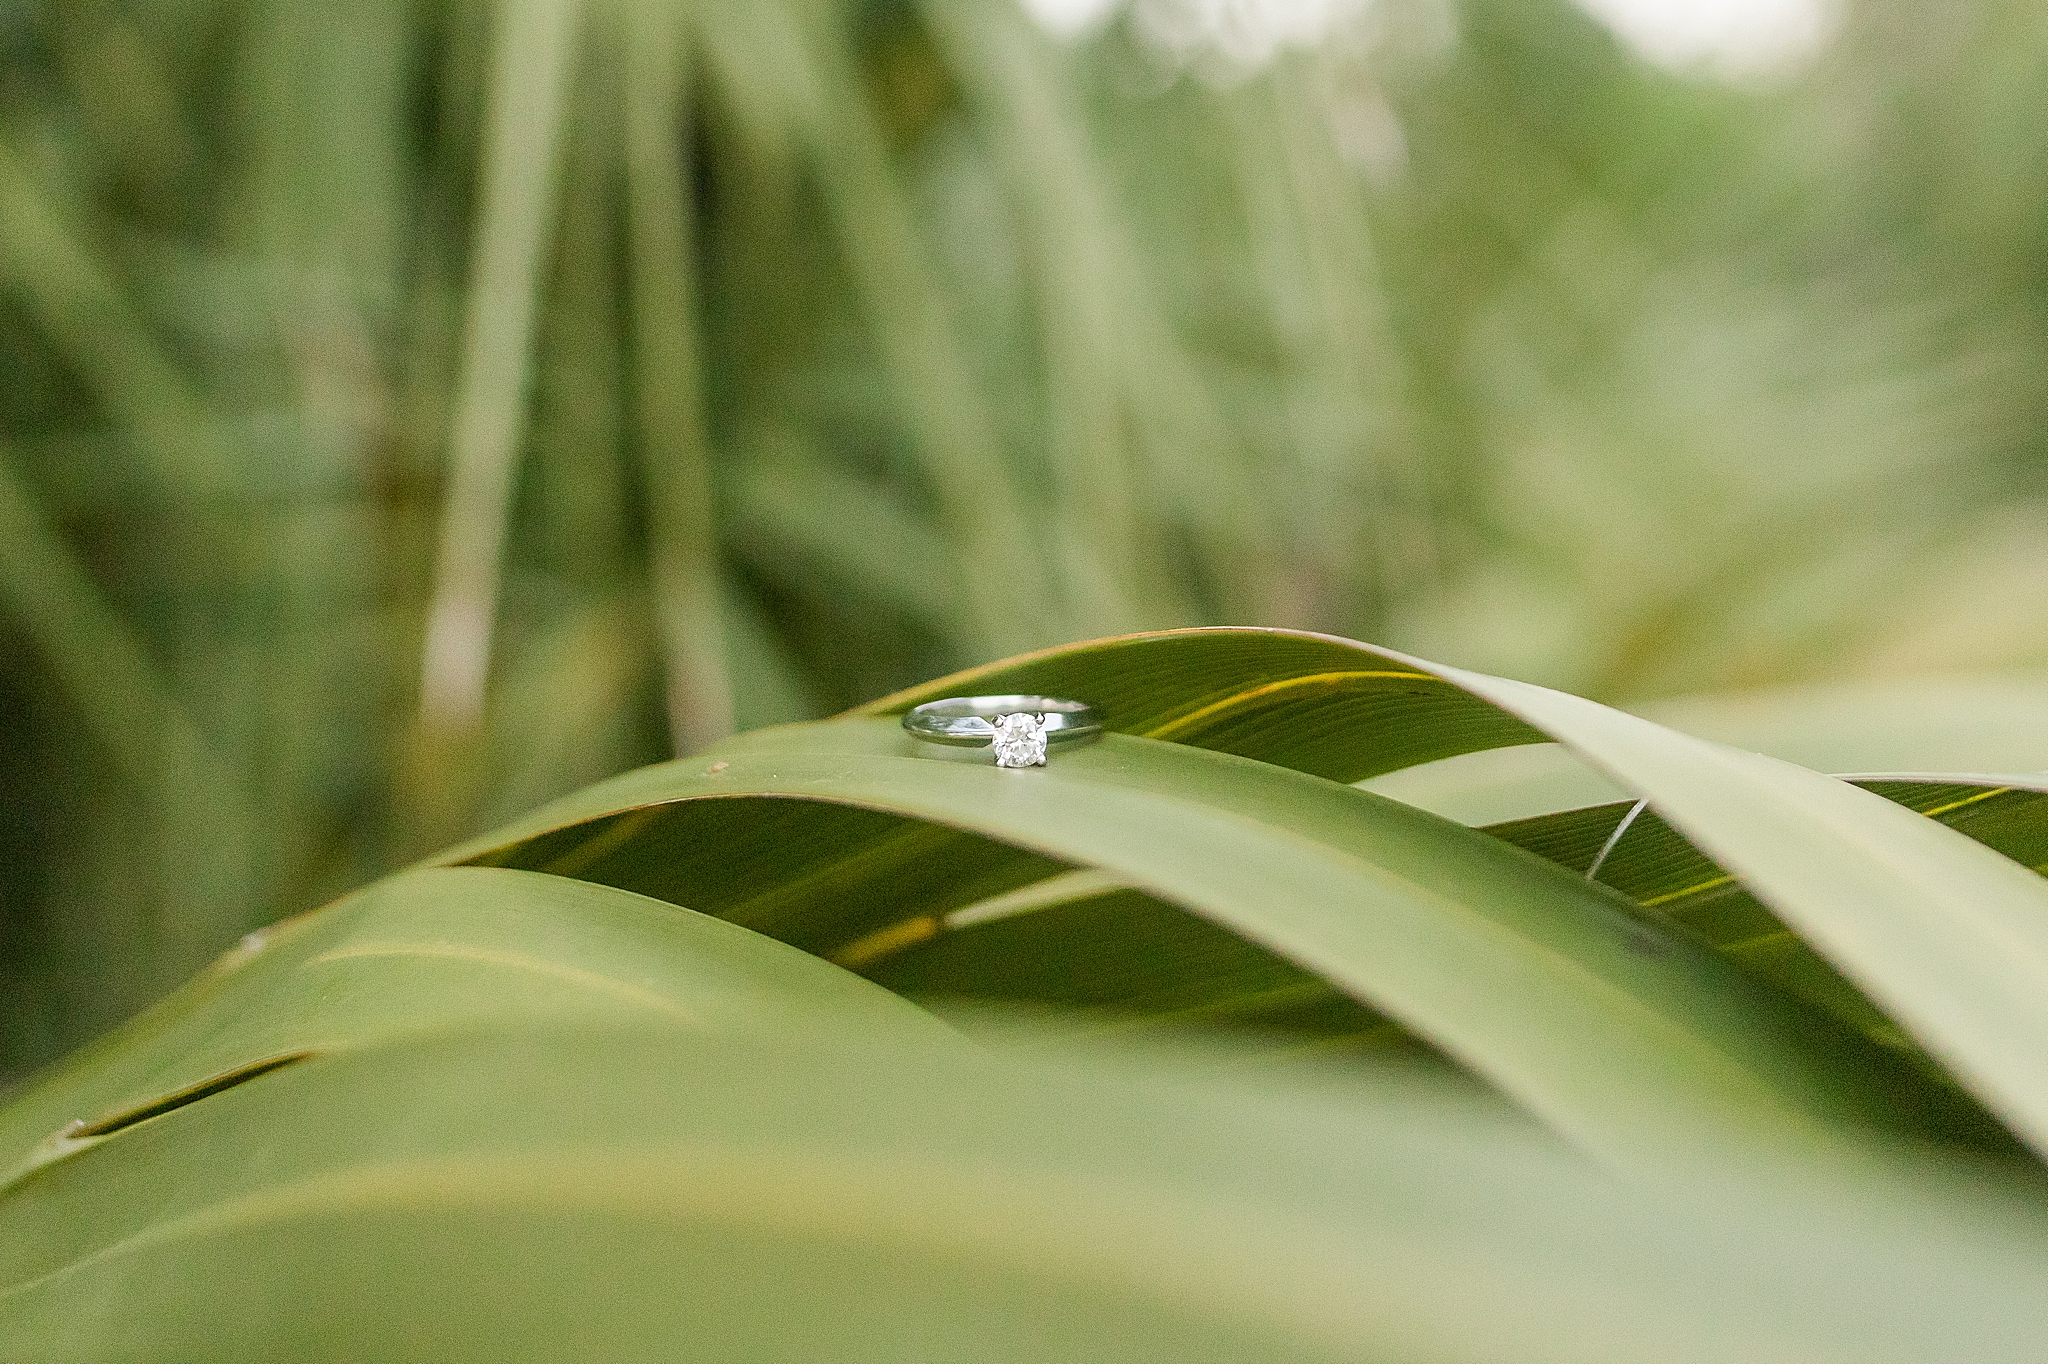 engagement ring rests on grass in Gulf State Park